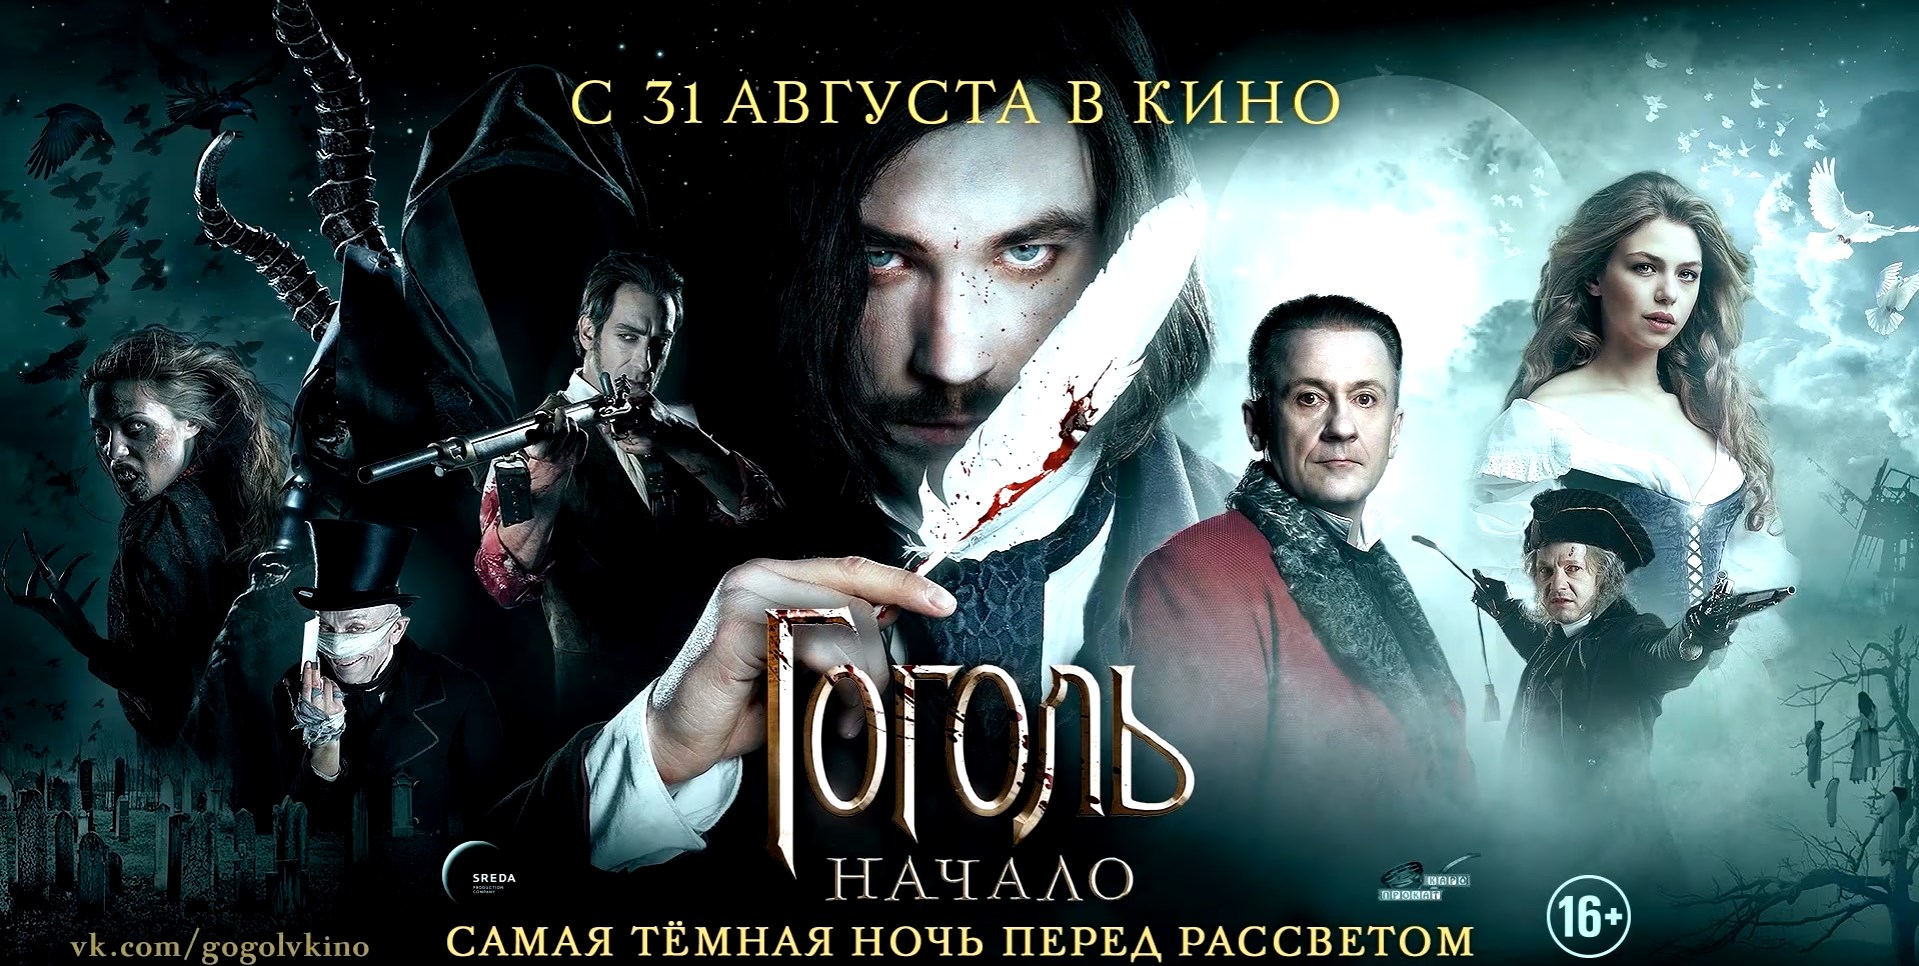 In the Russian box office the film Siberia with Keanu Reeves will be called Professional. Fans resent